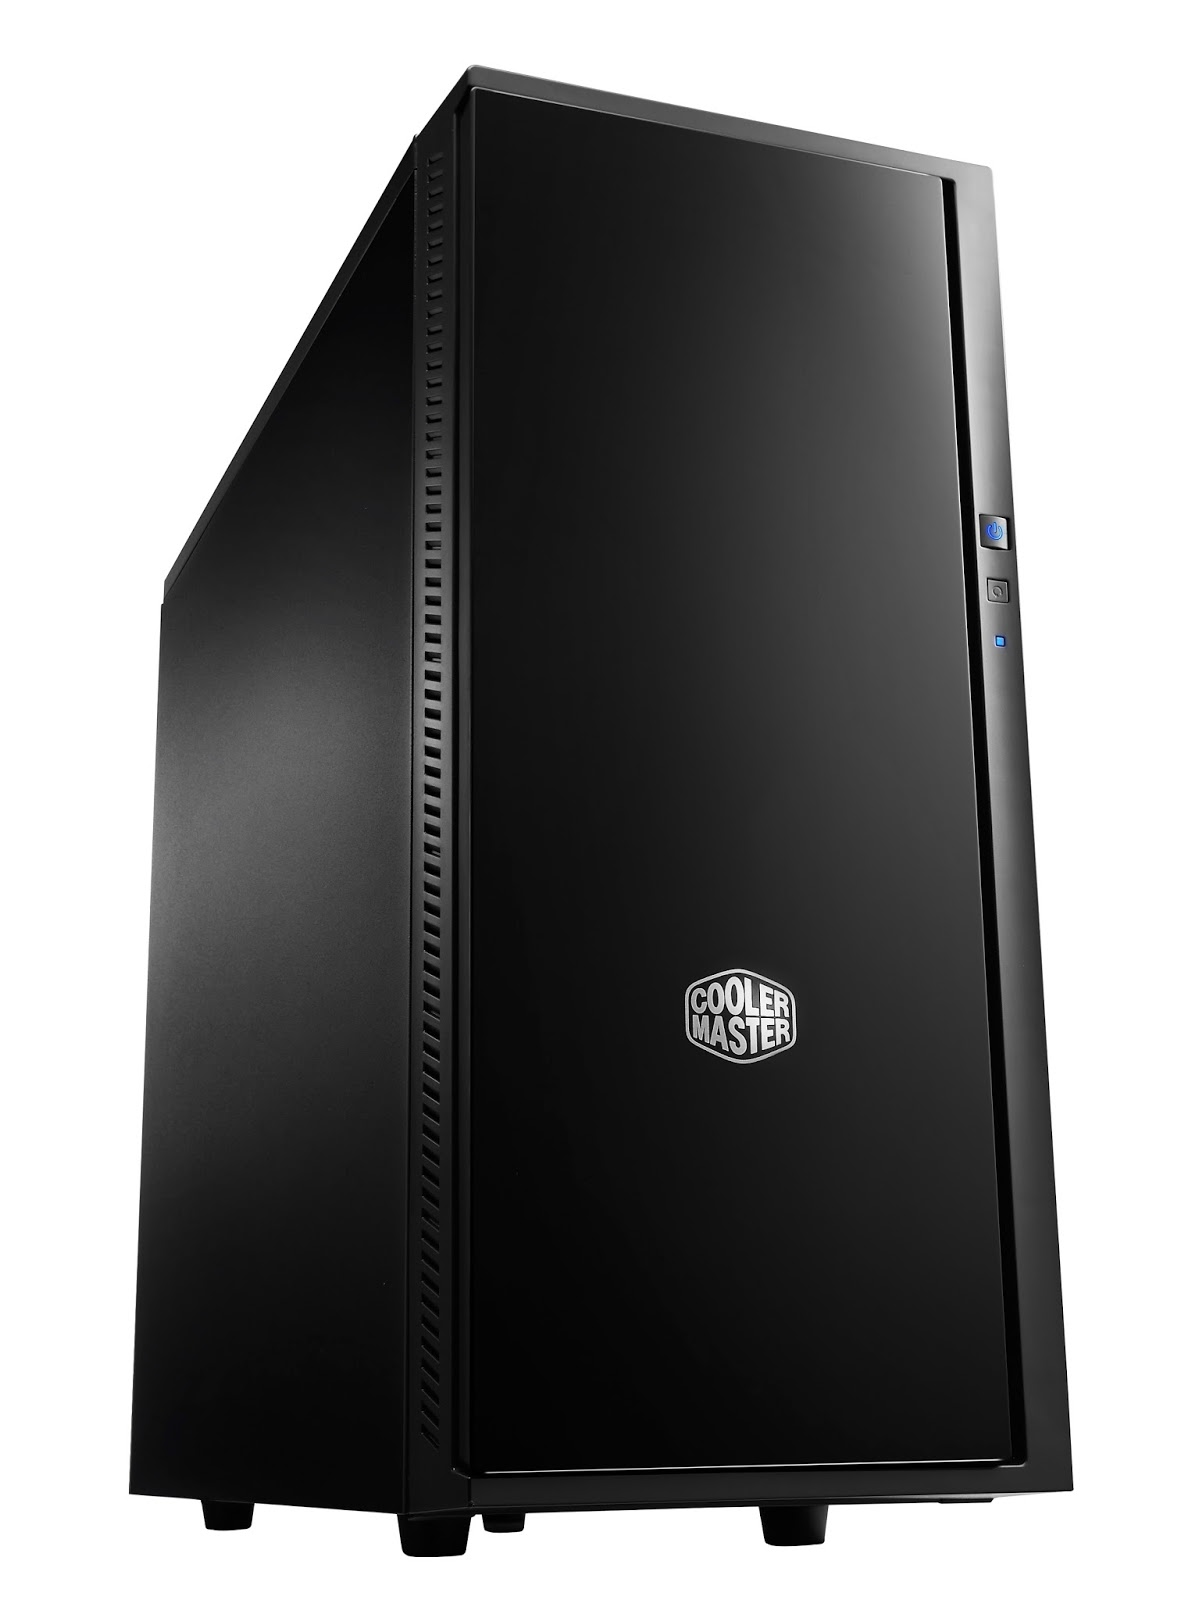 Cooler Master announces the new silent mid-tower - Silencio 452 1